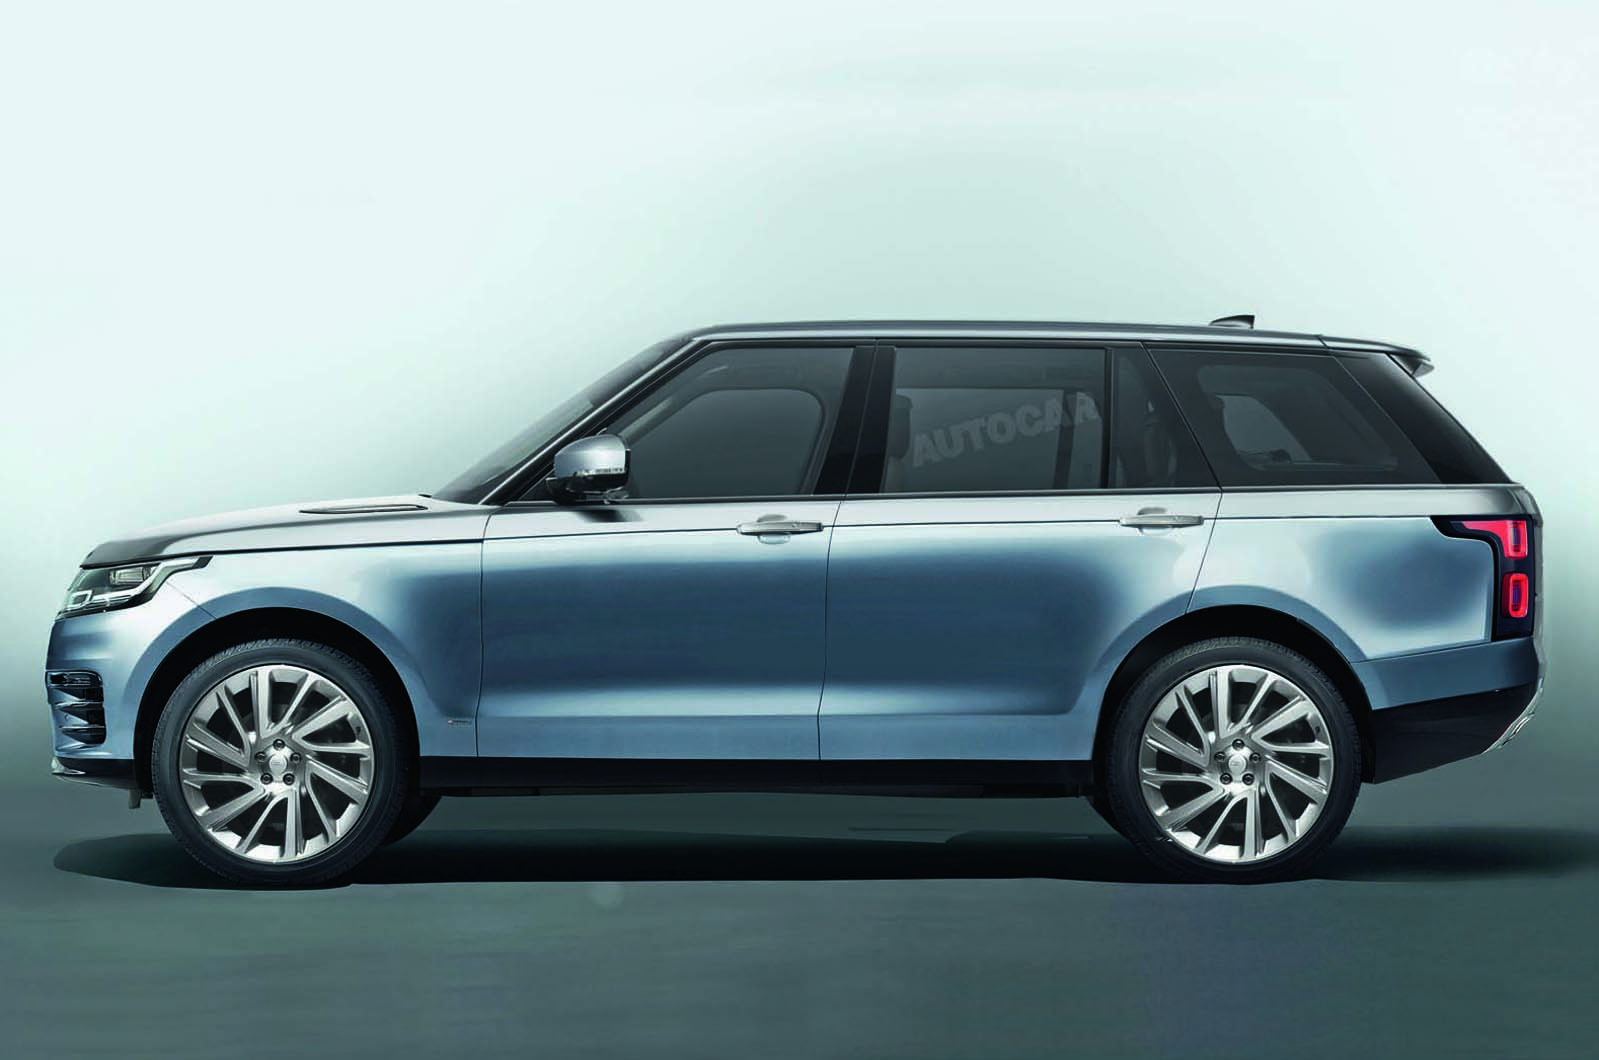 2020 Land Rover Range Rover Sport: Changes, Equipment, Price >> New 2021 Range Rover Spotted With Bmw V8 Engine Autocar